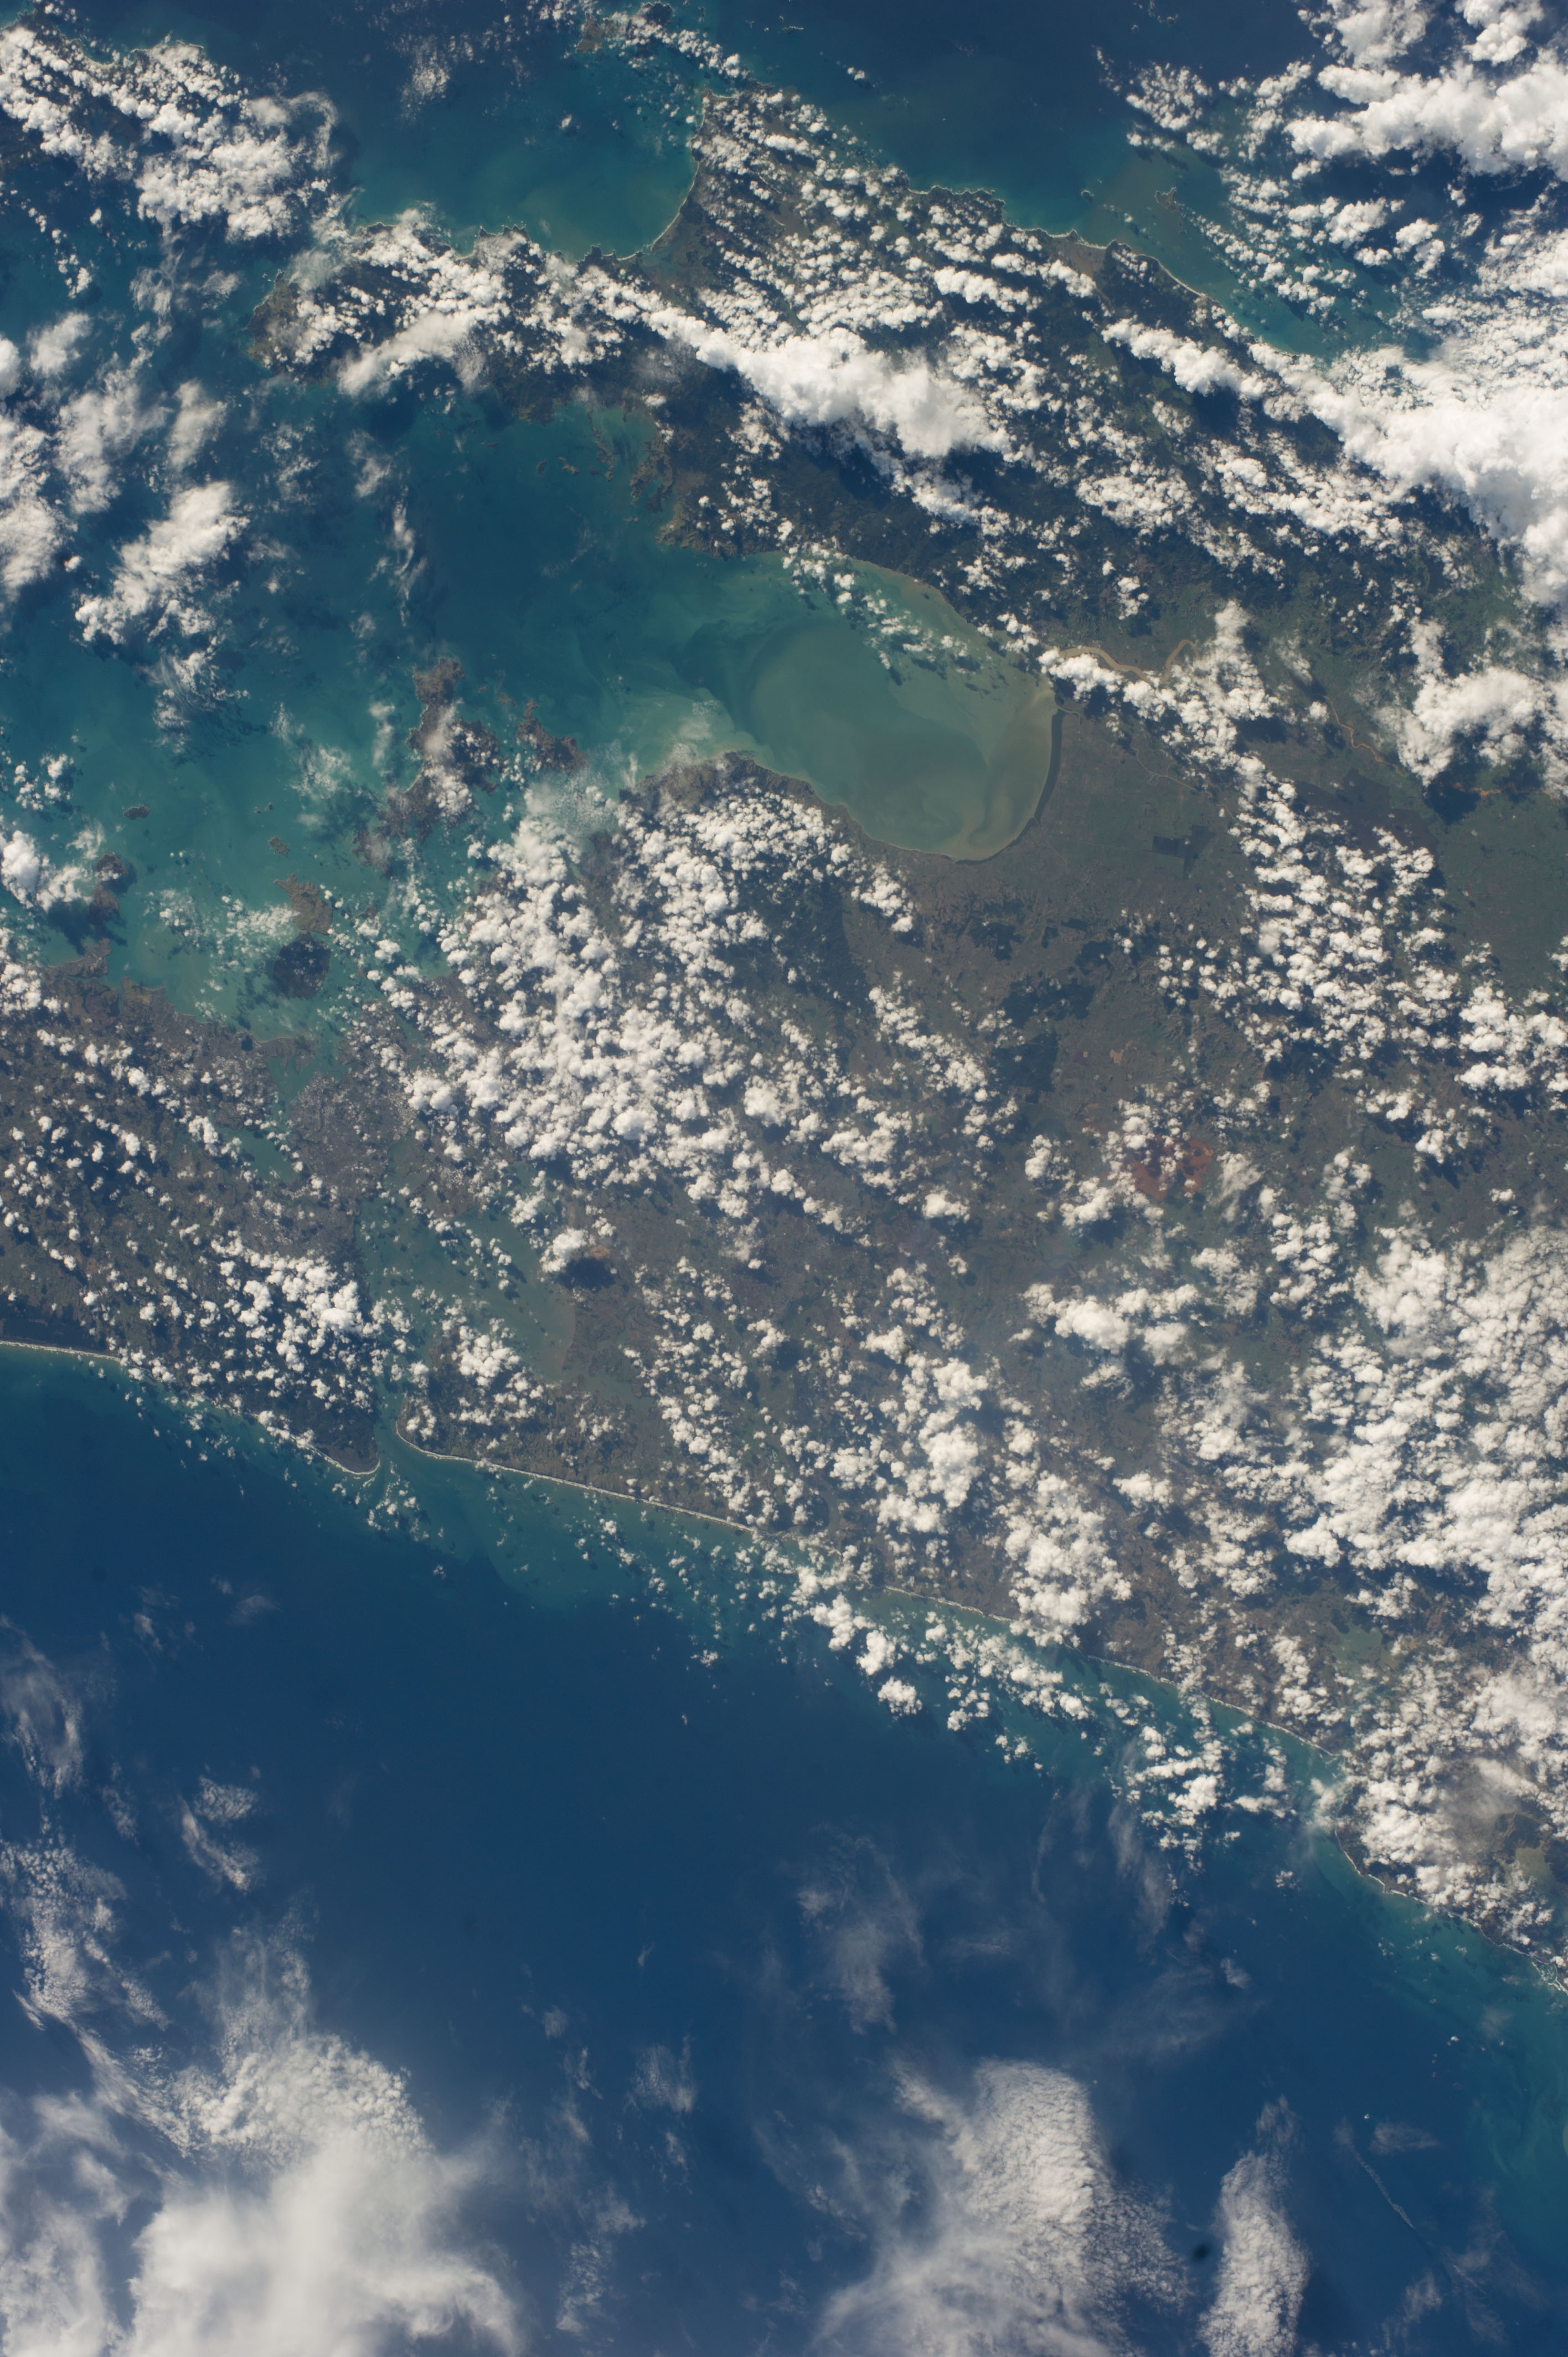 ISS039-E-012862